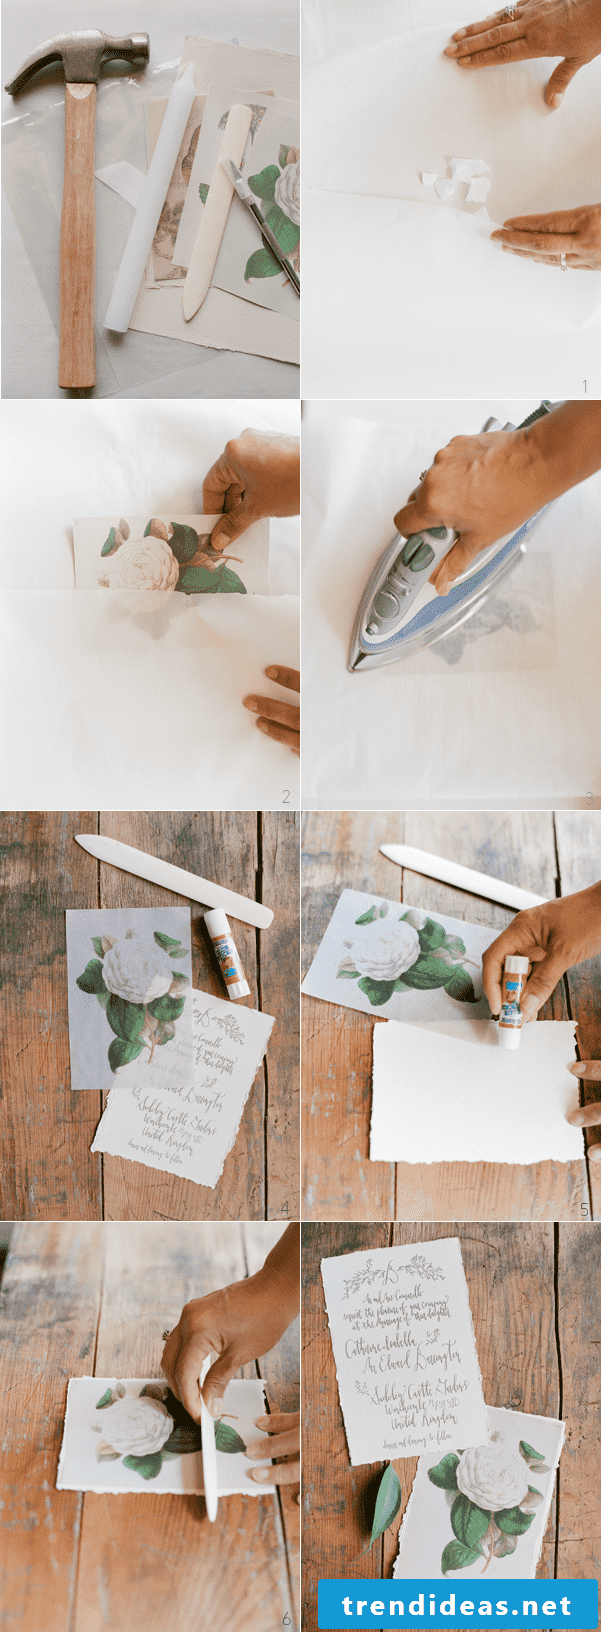 tinker wedding cards with a ironing instruction